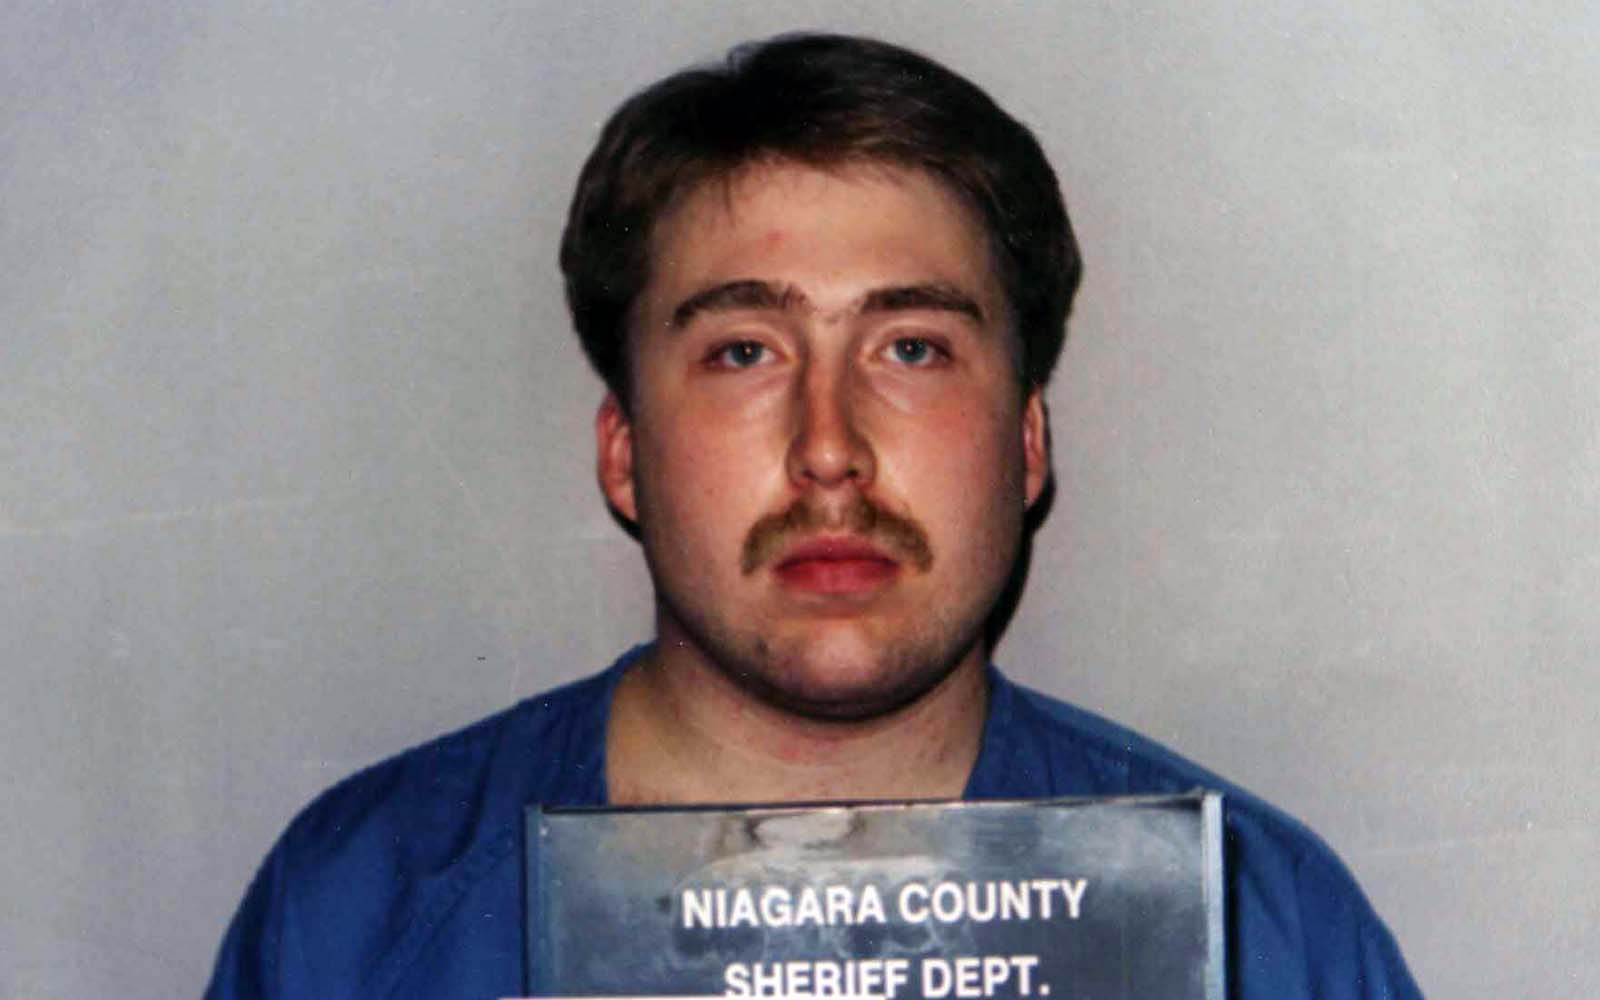 Notorious Falls killer William Shrubsall set to leave Canadian prison Friday